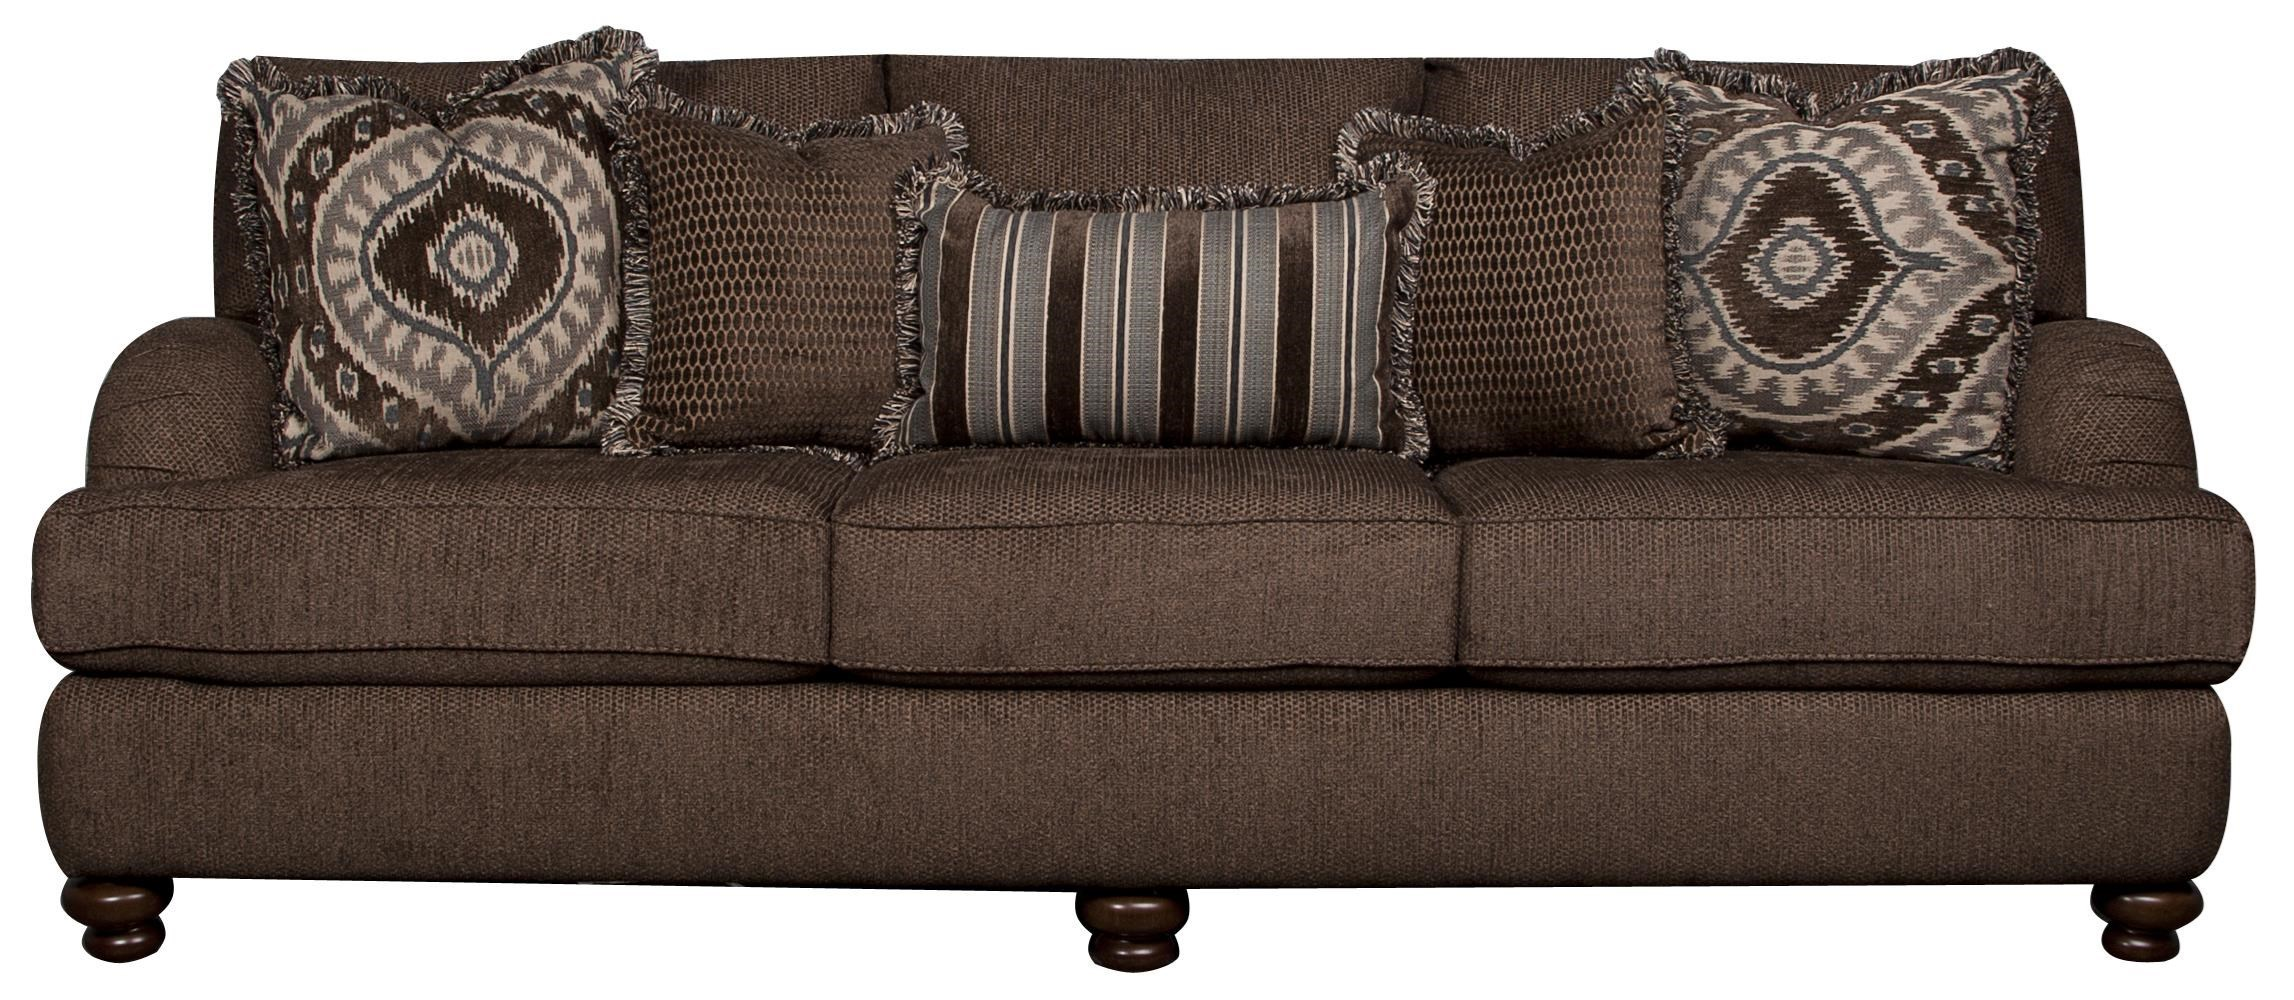 classic sofa austin stores elliston place kendall with accent pillows morris kendallkendall